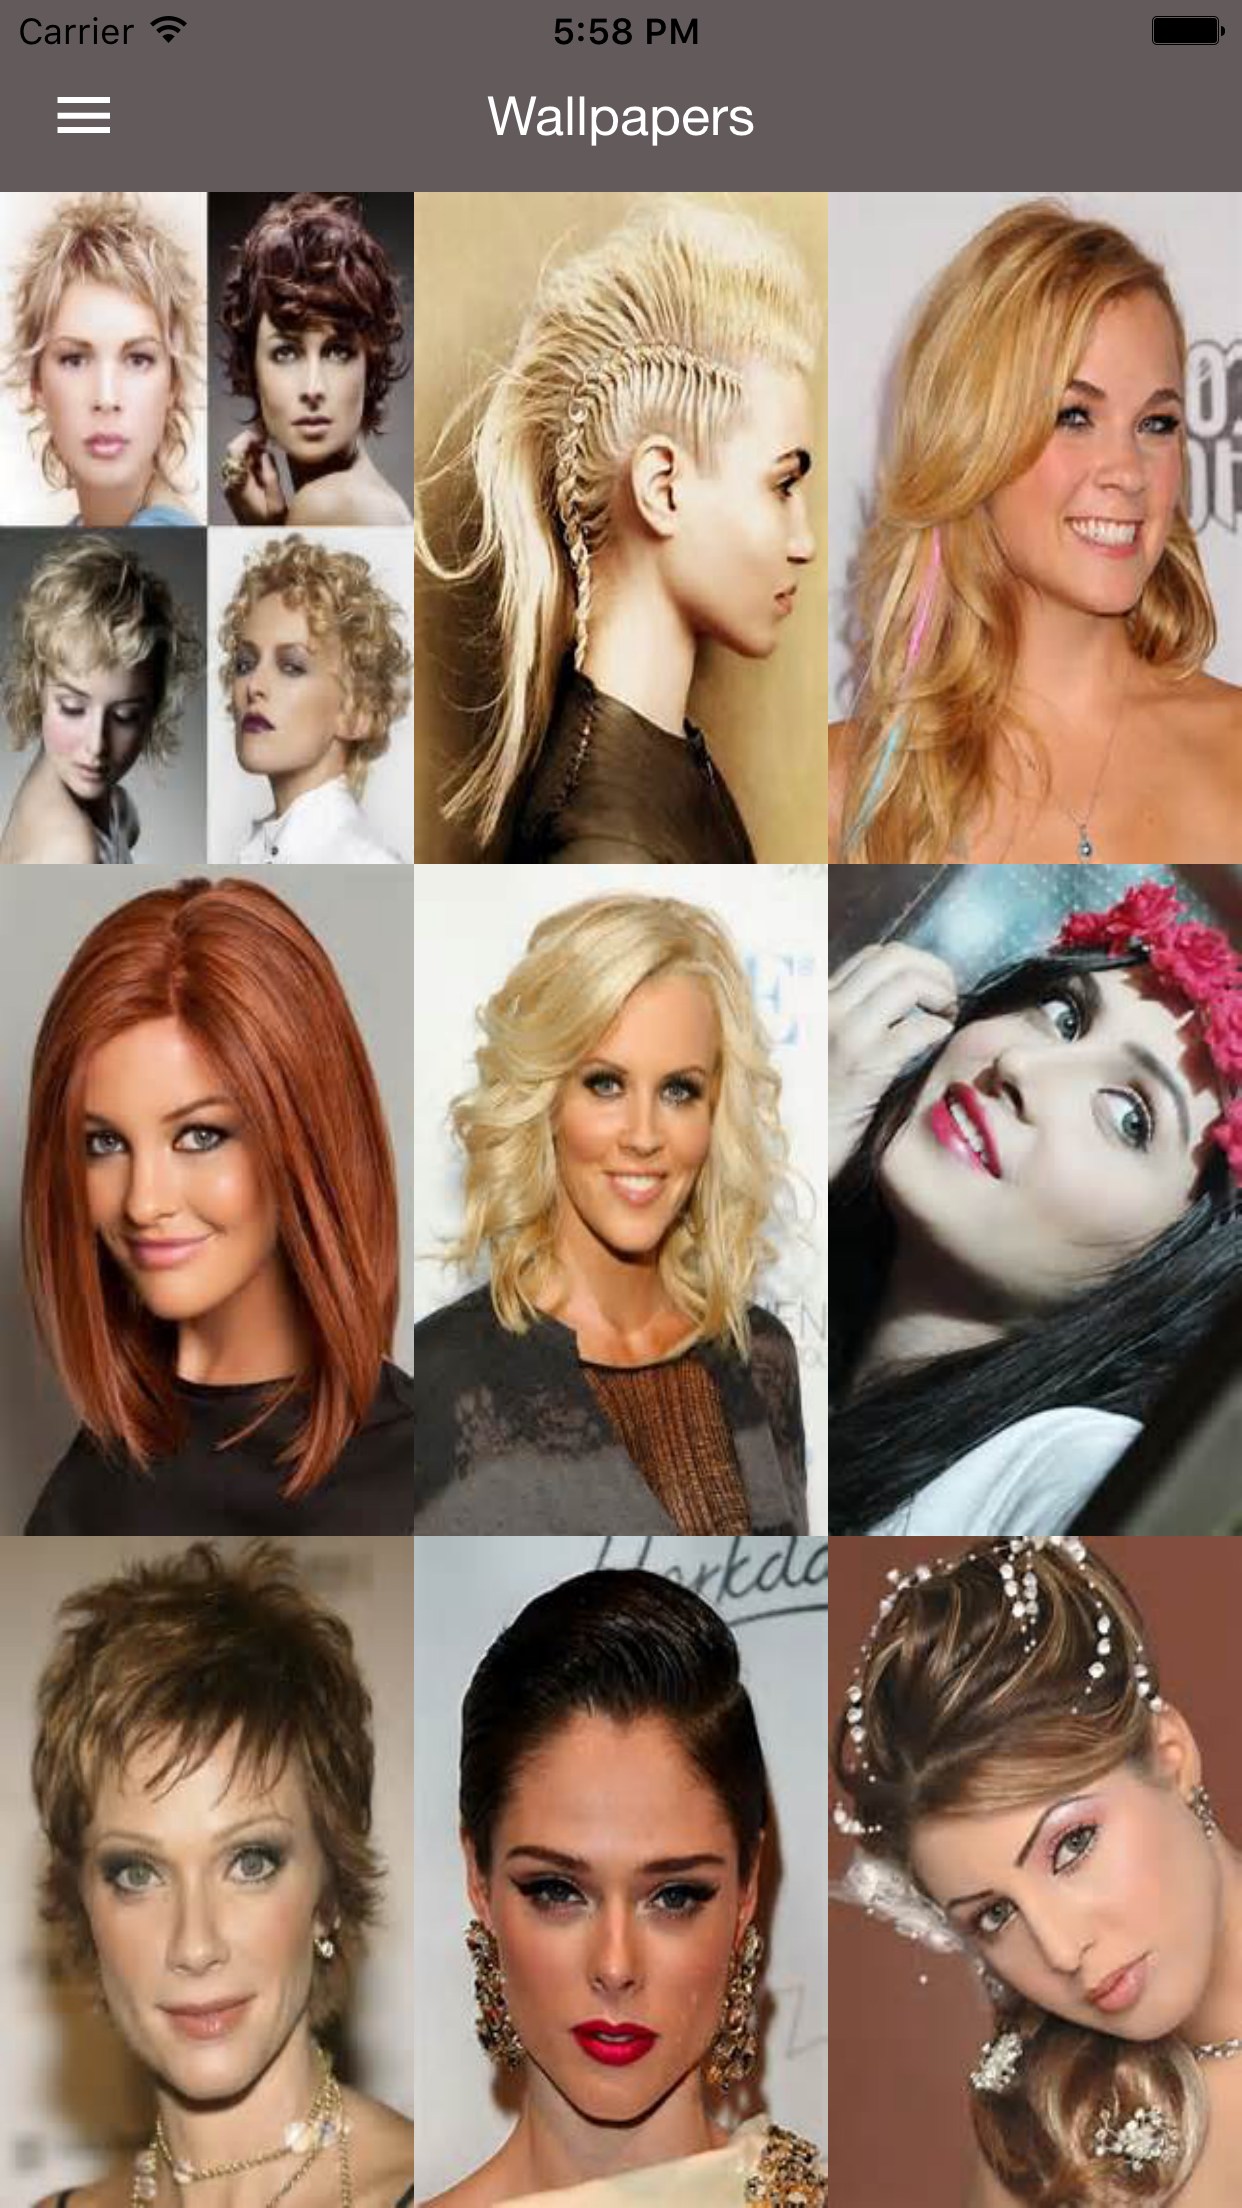 Hairstyle for Women - Haircuts & Hairstyles Ideas Screenshot